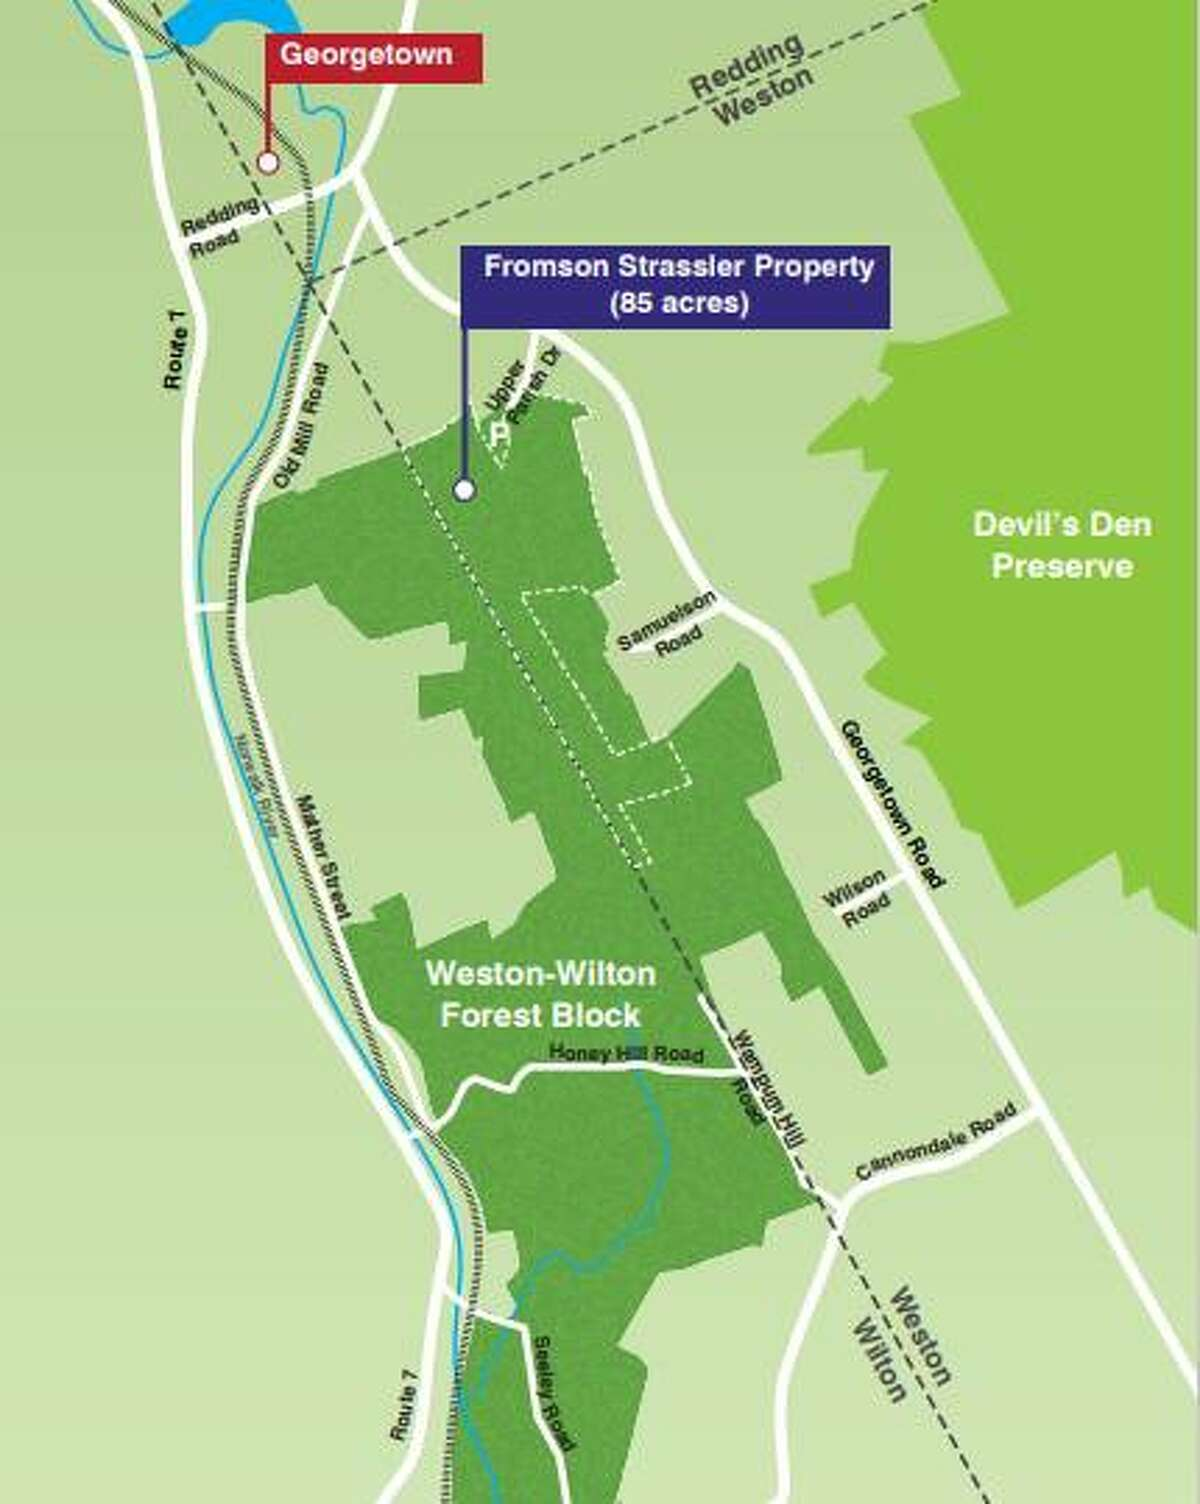 Weston residents voted overwhelmingly to approve the sale of the 85-acre Fromson Strassler property to Aspetuck Land Trust for $1,143,750. The sale will allow the trust to preserve the parcel of land forever as open space.